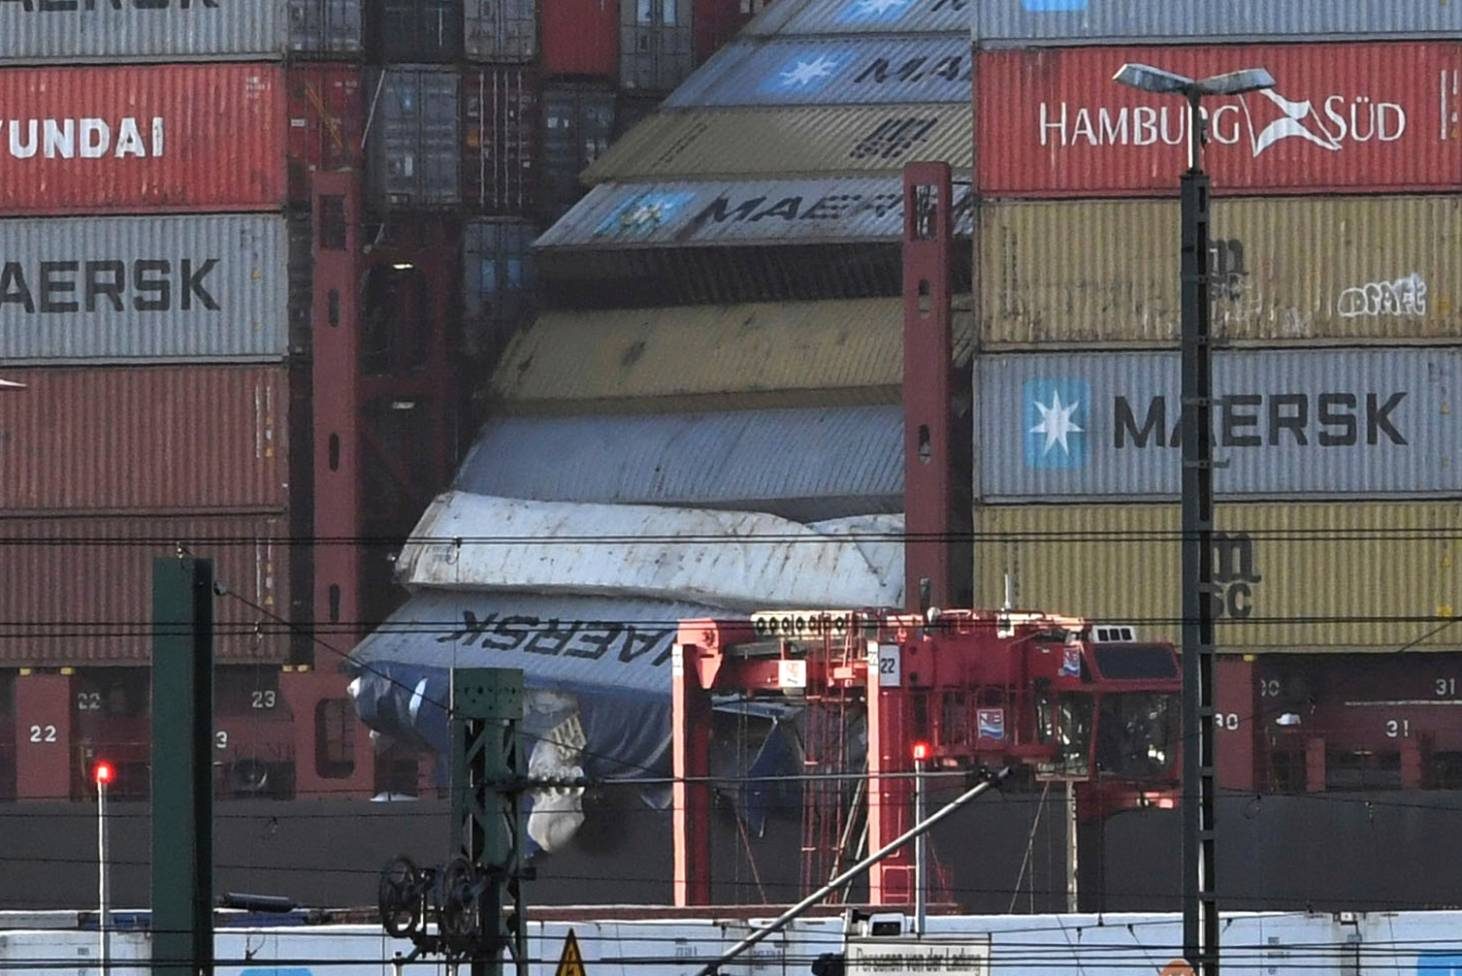 Container Oldenburg Tvs Toys Wash Up But Search Is On For Toxic Cargo And Containers